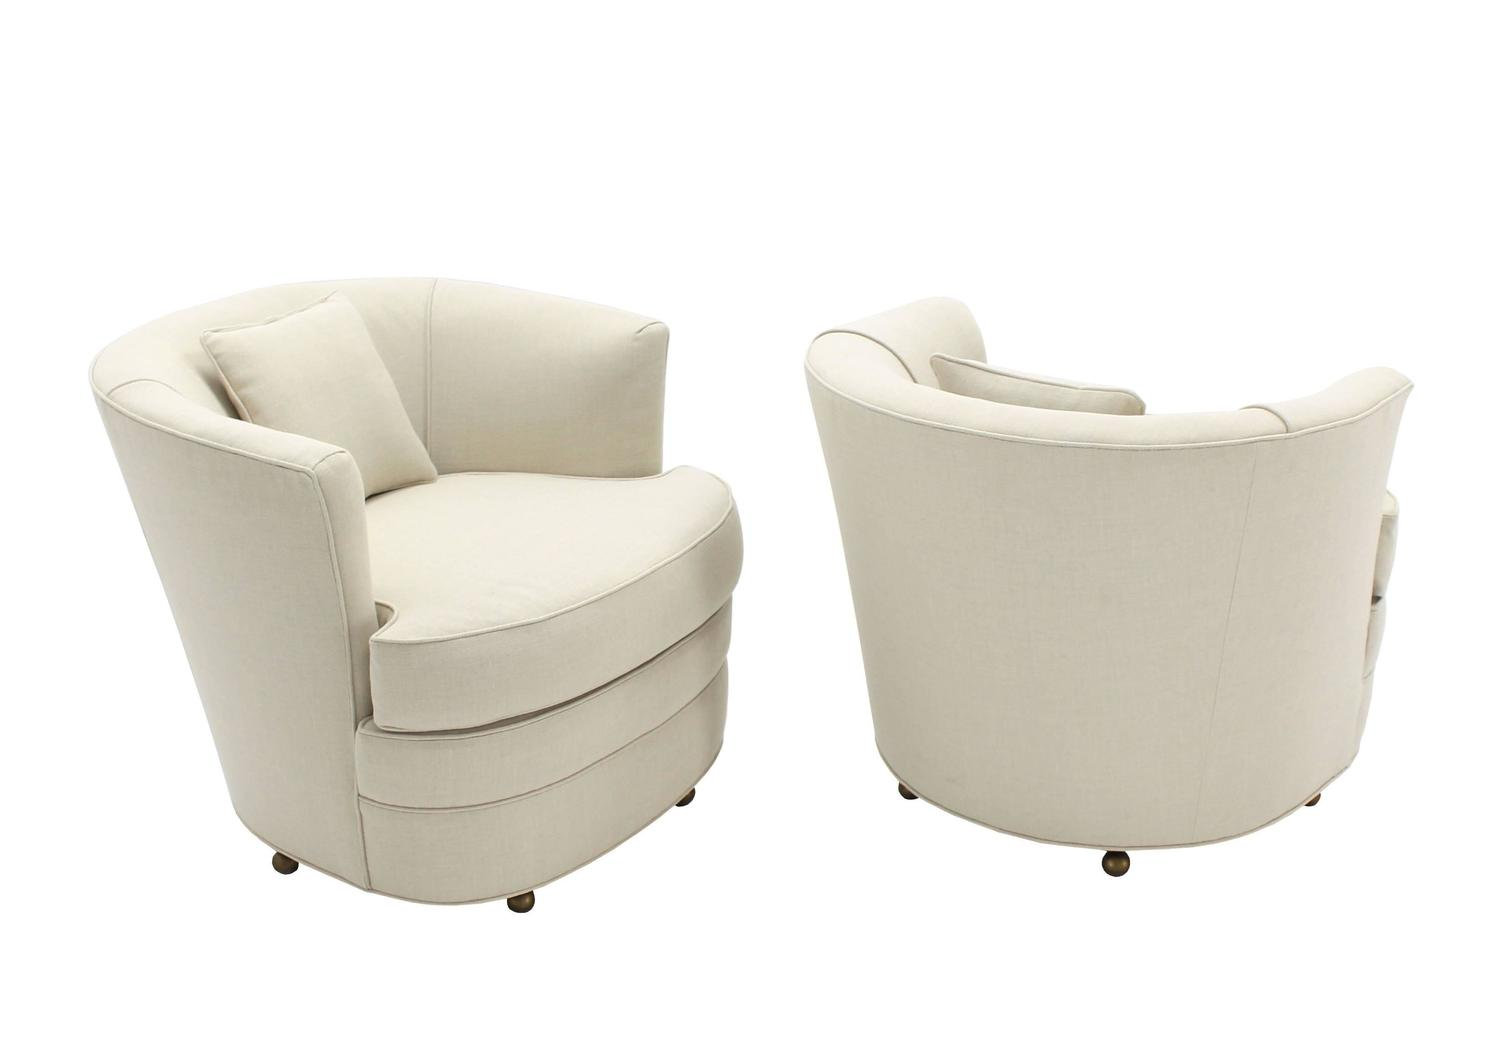 barrel swivel chairs upholstered and stools pair of back new upholstery for sale